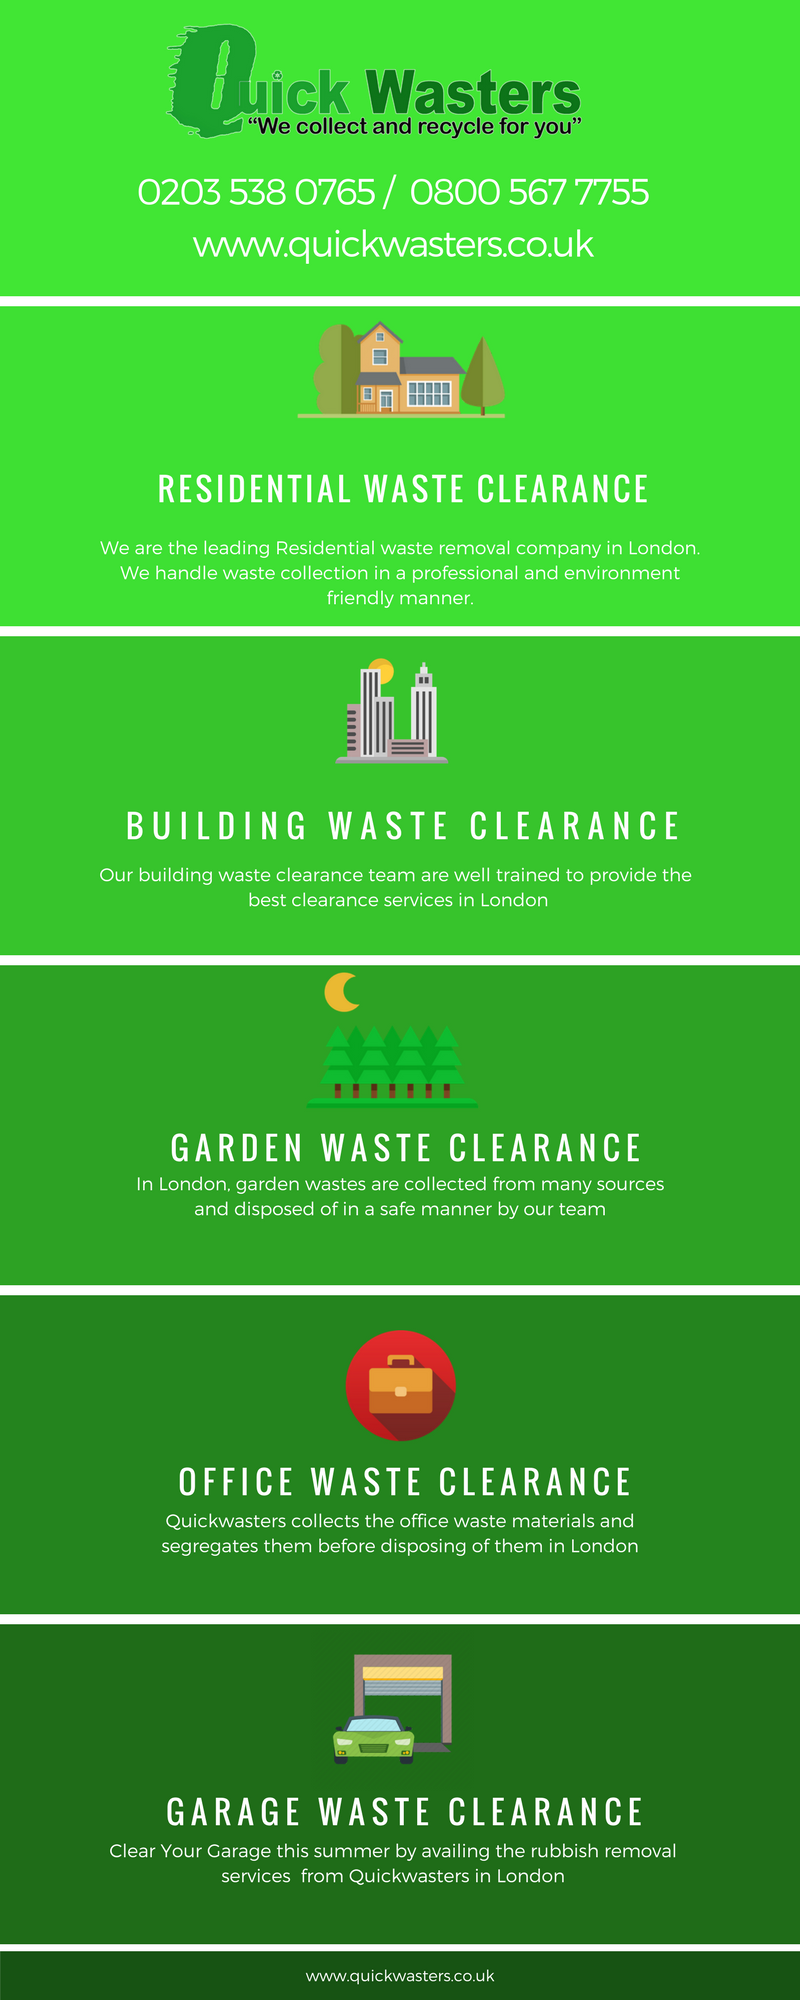 Reliable & Trusted Rubbish Removal Company In London – Quickwasters